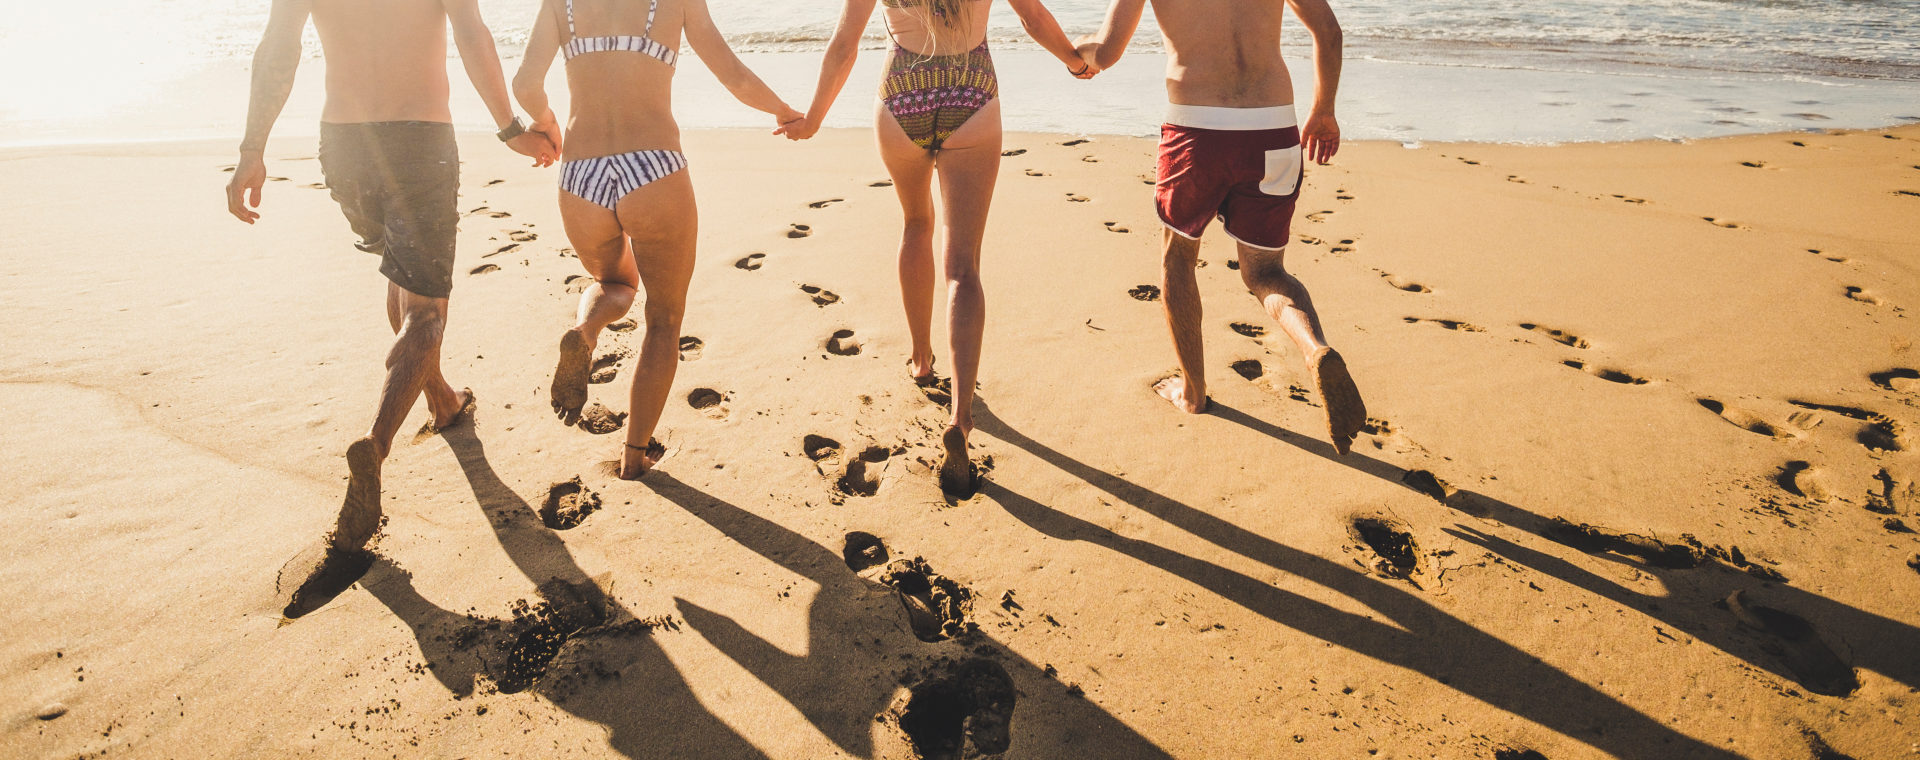 Back view people in summer holiday vacation running on the sand at the beach to the water sea all together in friendship holding hands - bikini group men and women have fun in the sunset with shadows